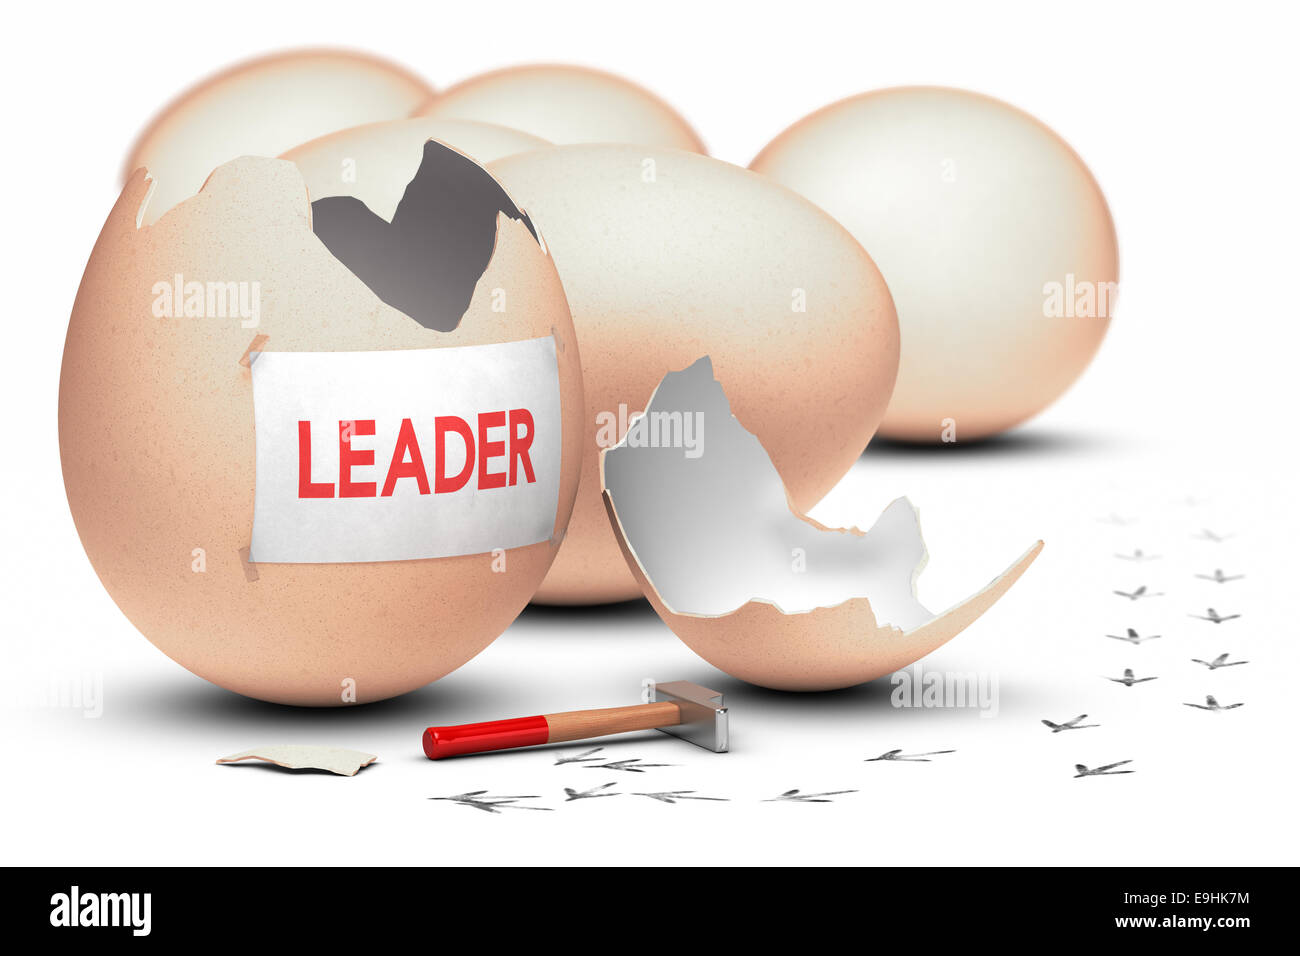 One egg broken by using a hammer with the word leader written on a sheet of paper, concept image for illustration - Stock Image